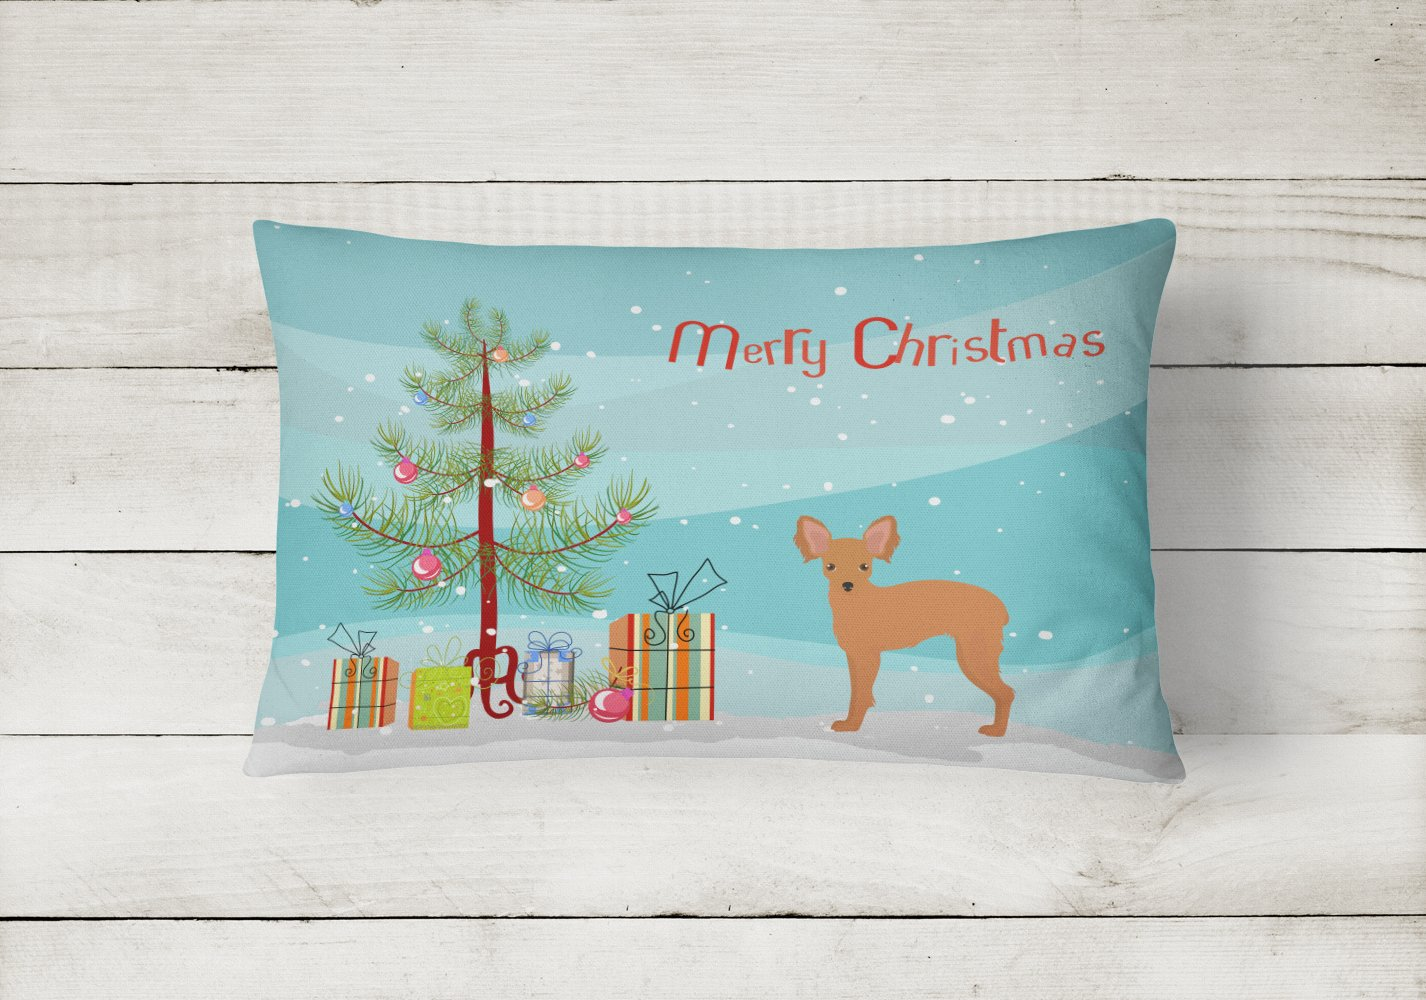 Russkiy Toy or Russian Toy Terrier Christmas Tree Canvas Fabric Decorative Pillow CK3484PW1216 by Caroline's Treasures